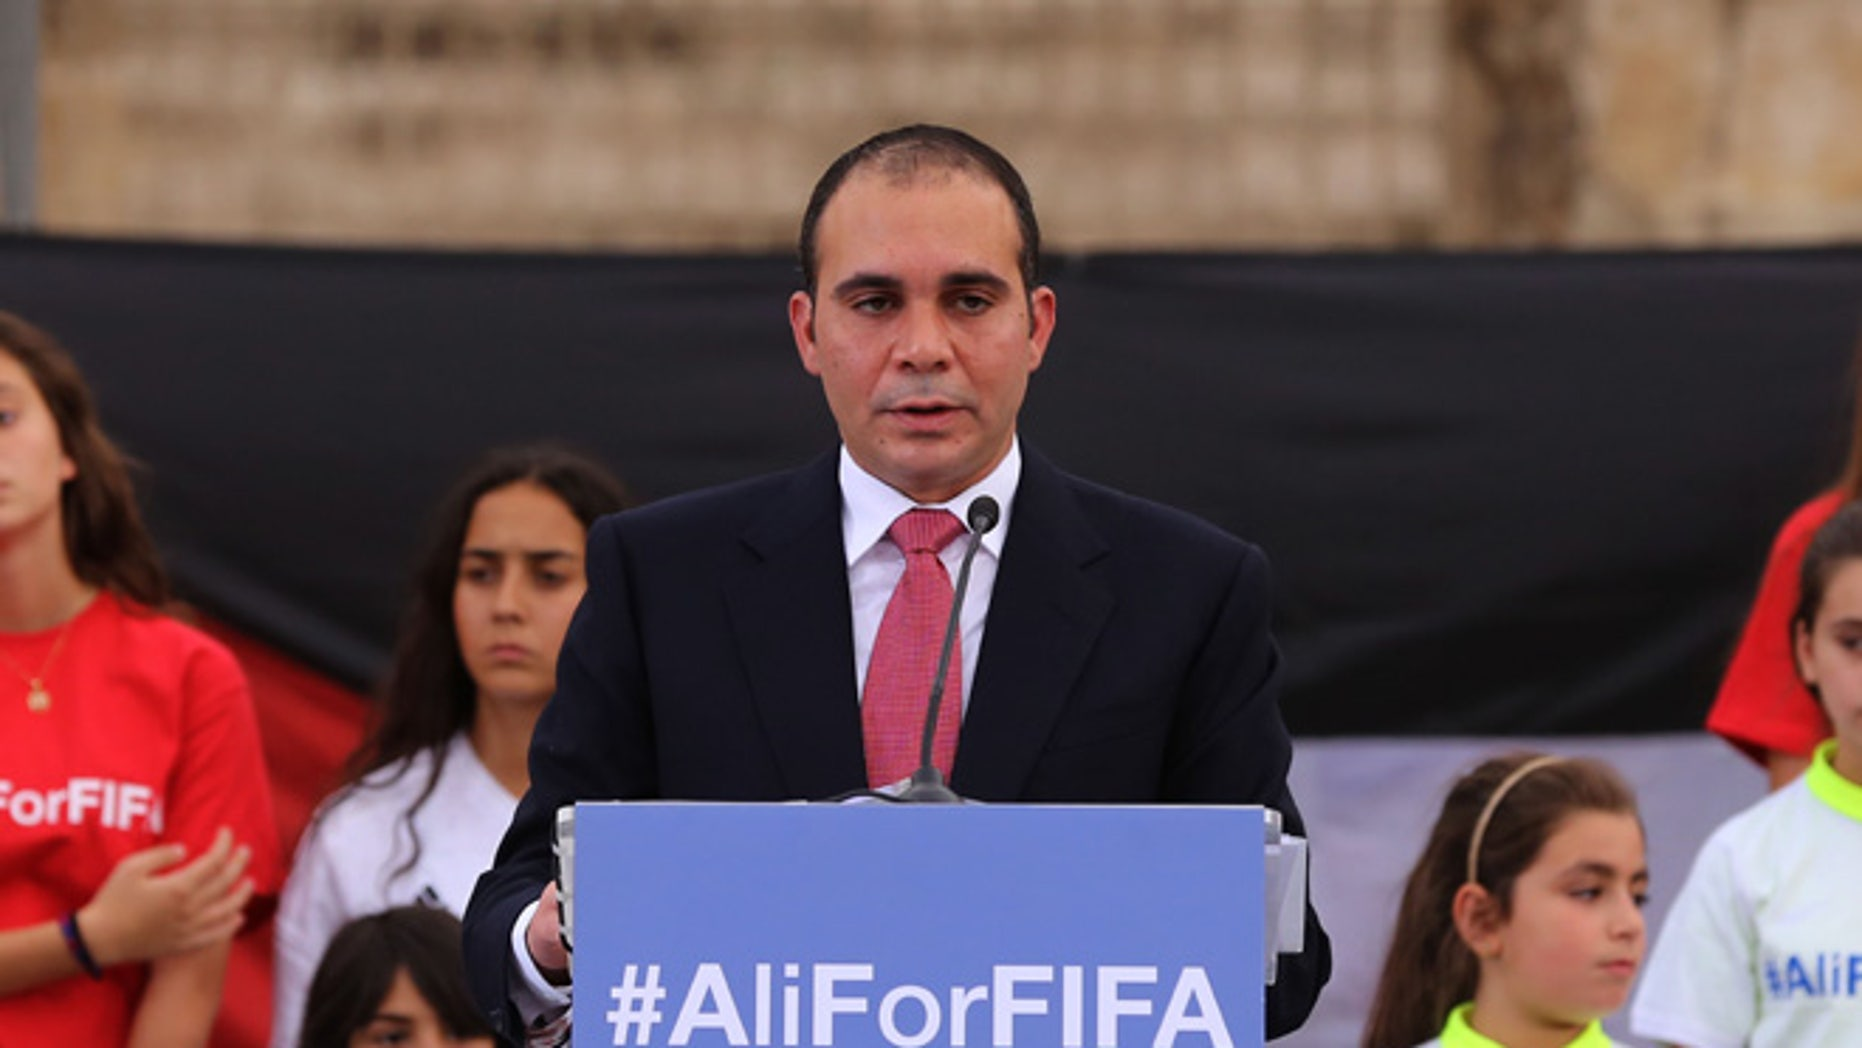 """FILE- In this file photo dated Wednesday, Sept. 9, 2015, Jordan's Prince Ali bin al-Hussein, flanked by school-age soccer players, speaks to about 300 guests during an event at a Roman amphitheater in Amman, Jordan. Seven men are in the running to replace Sepp Blatter as FIFA president, with Michel Platini's candidature accepted but pending because of his suspension from soccer. FIFA published the list of valid applications """"proposed in due time and form"""" on Wednesday Oct. 28, 2015. It did not include former Trinidad and Tobago player David Nakhid, who did not have the five required nominations. he seven candidates for the Feb. 26 election are: Platini, Prince Ali bin al-Hussein, Gianni Infantino, Tokyo Sexwale, Musa Bility, Jerome Champagne and Sheikh Salman bin Ebrahim Al Khalifa.  (AP Photo/Raad Adayleh, FILE)"""